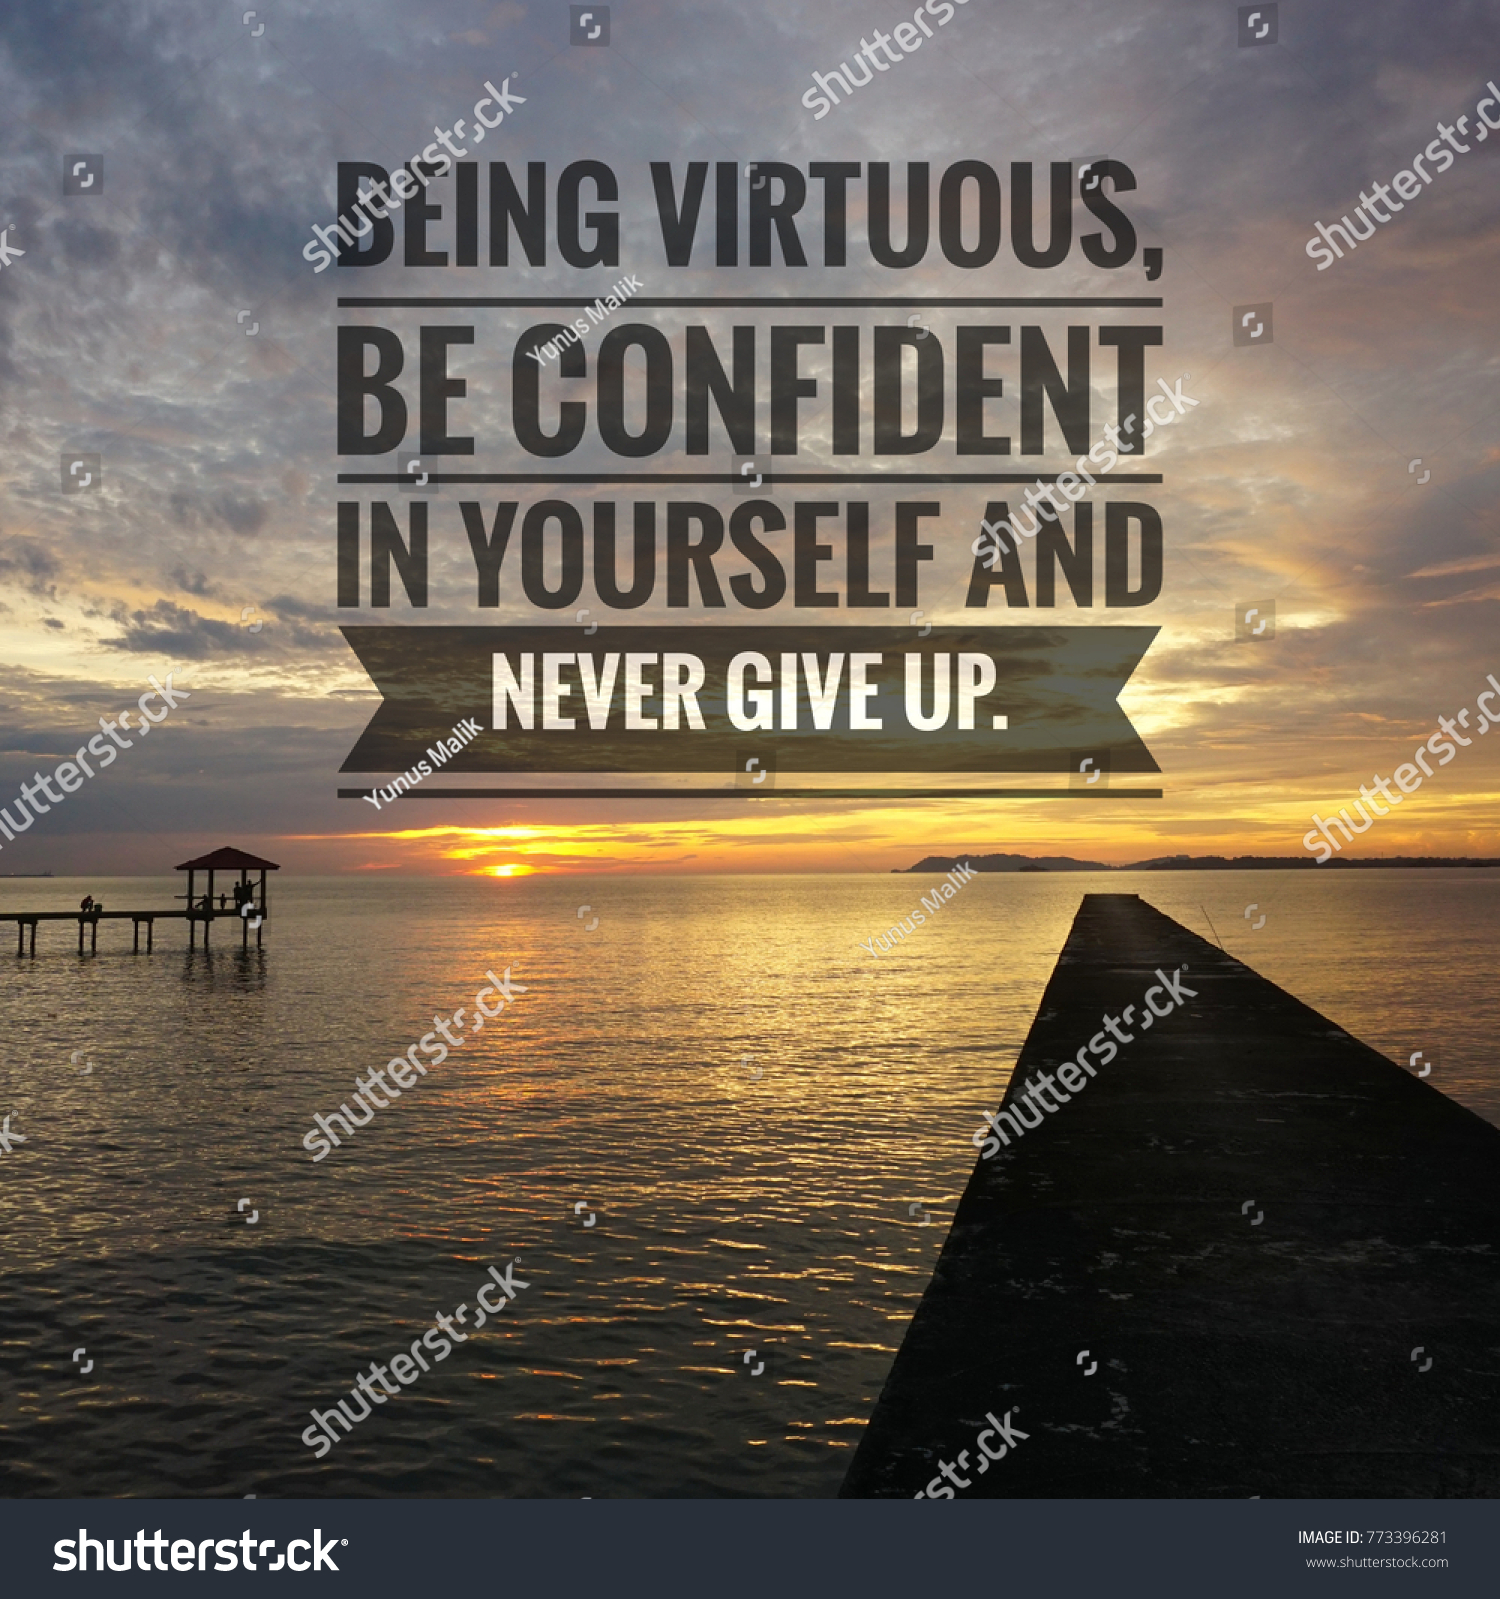 Quotes About Being Confident Classy Inspirational Motivating Quotes On Nature Background Stock Photo